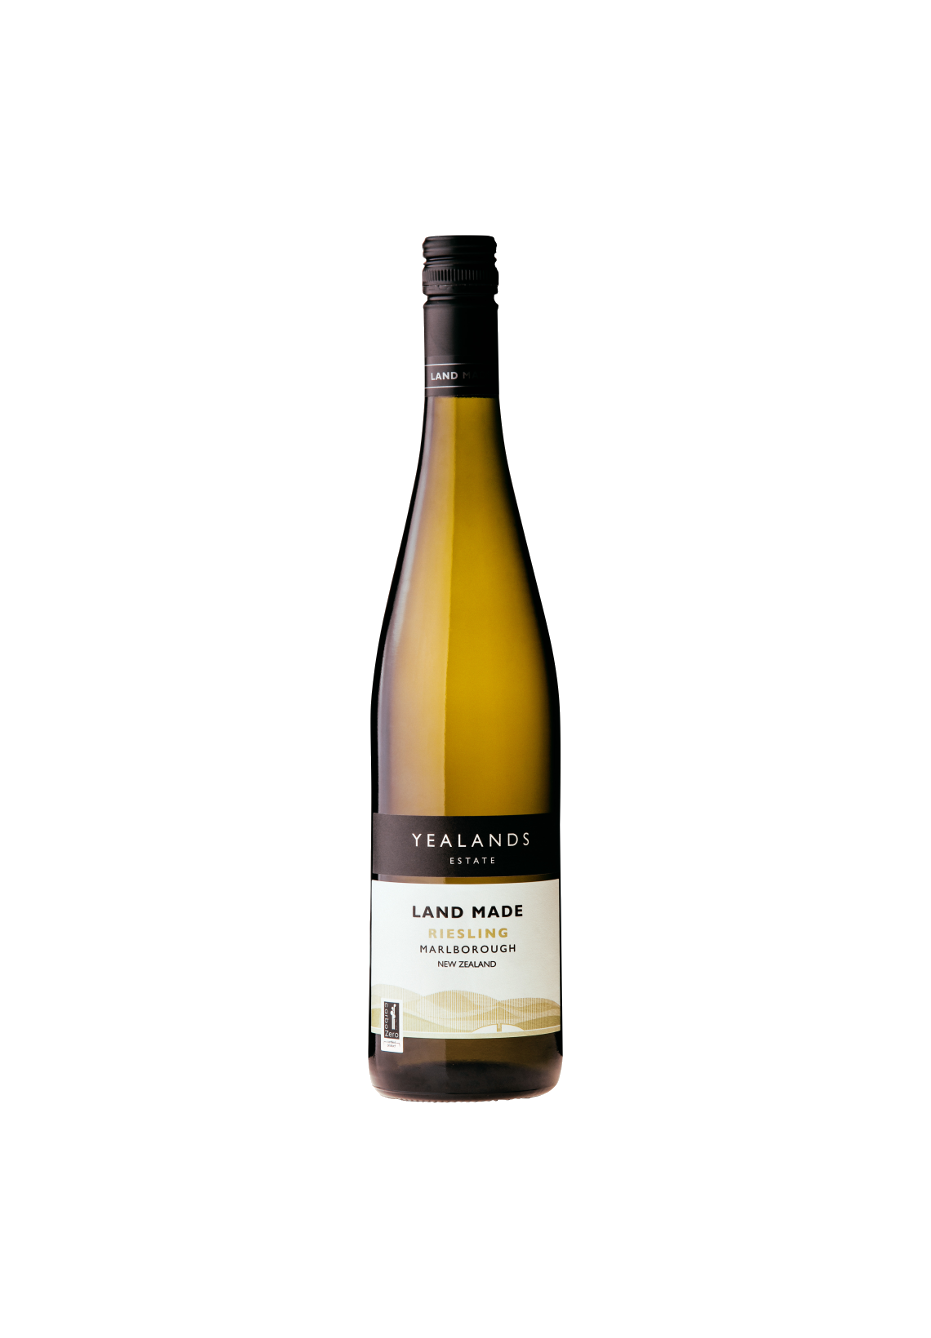 Yealand's Estate 'Land Made' Riesling 2015